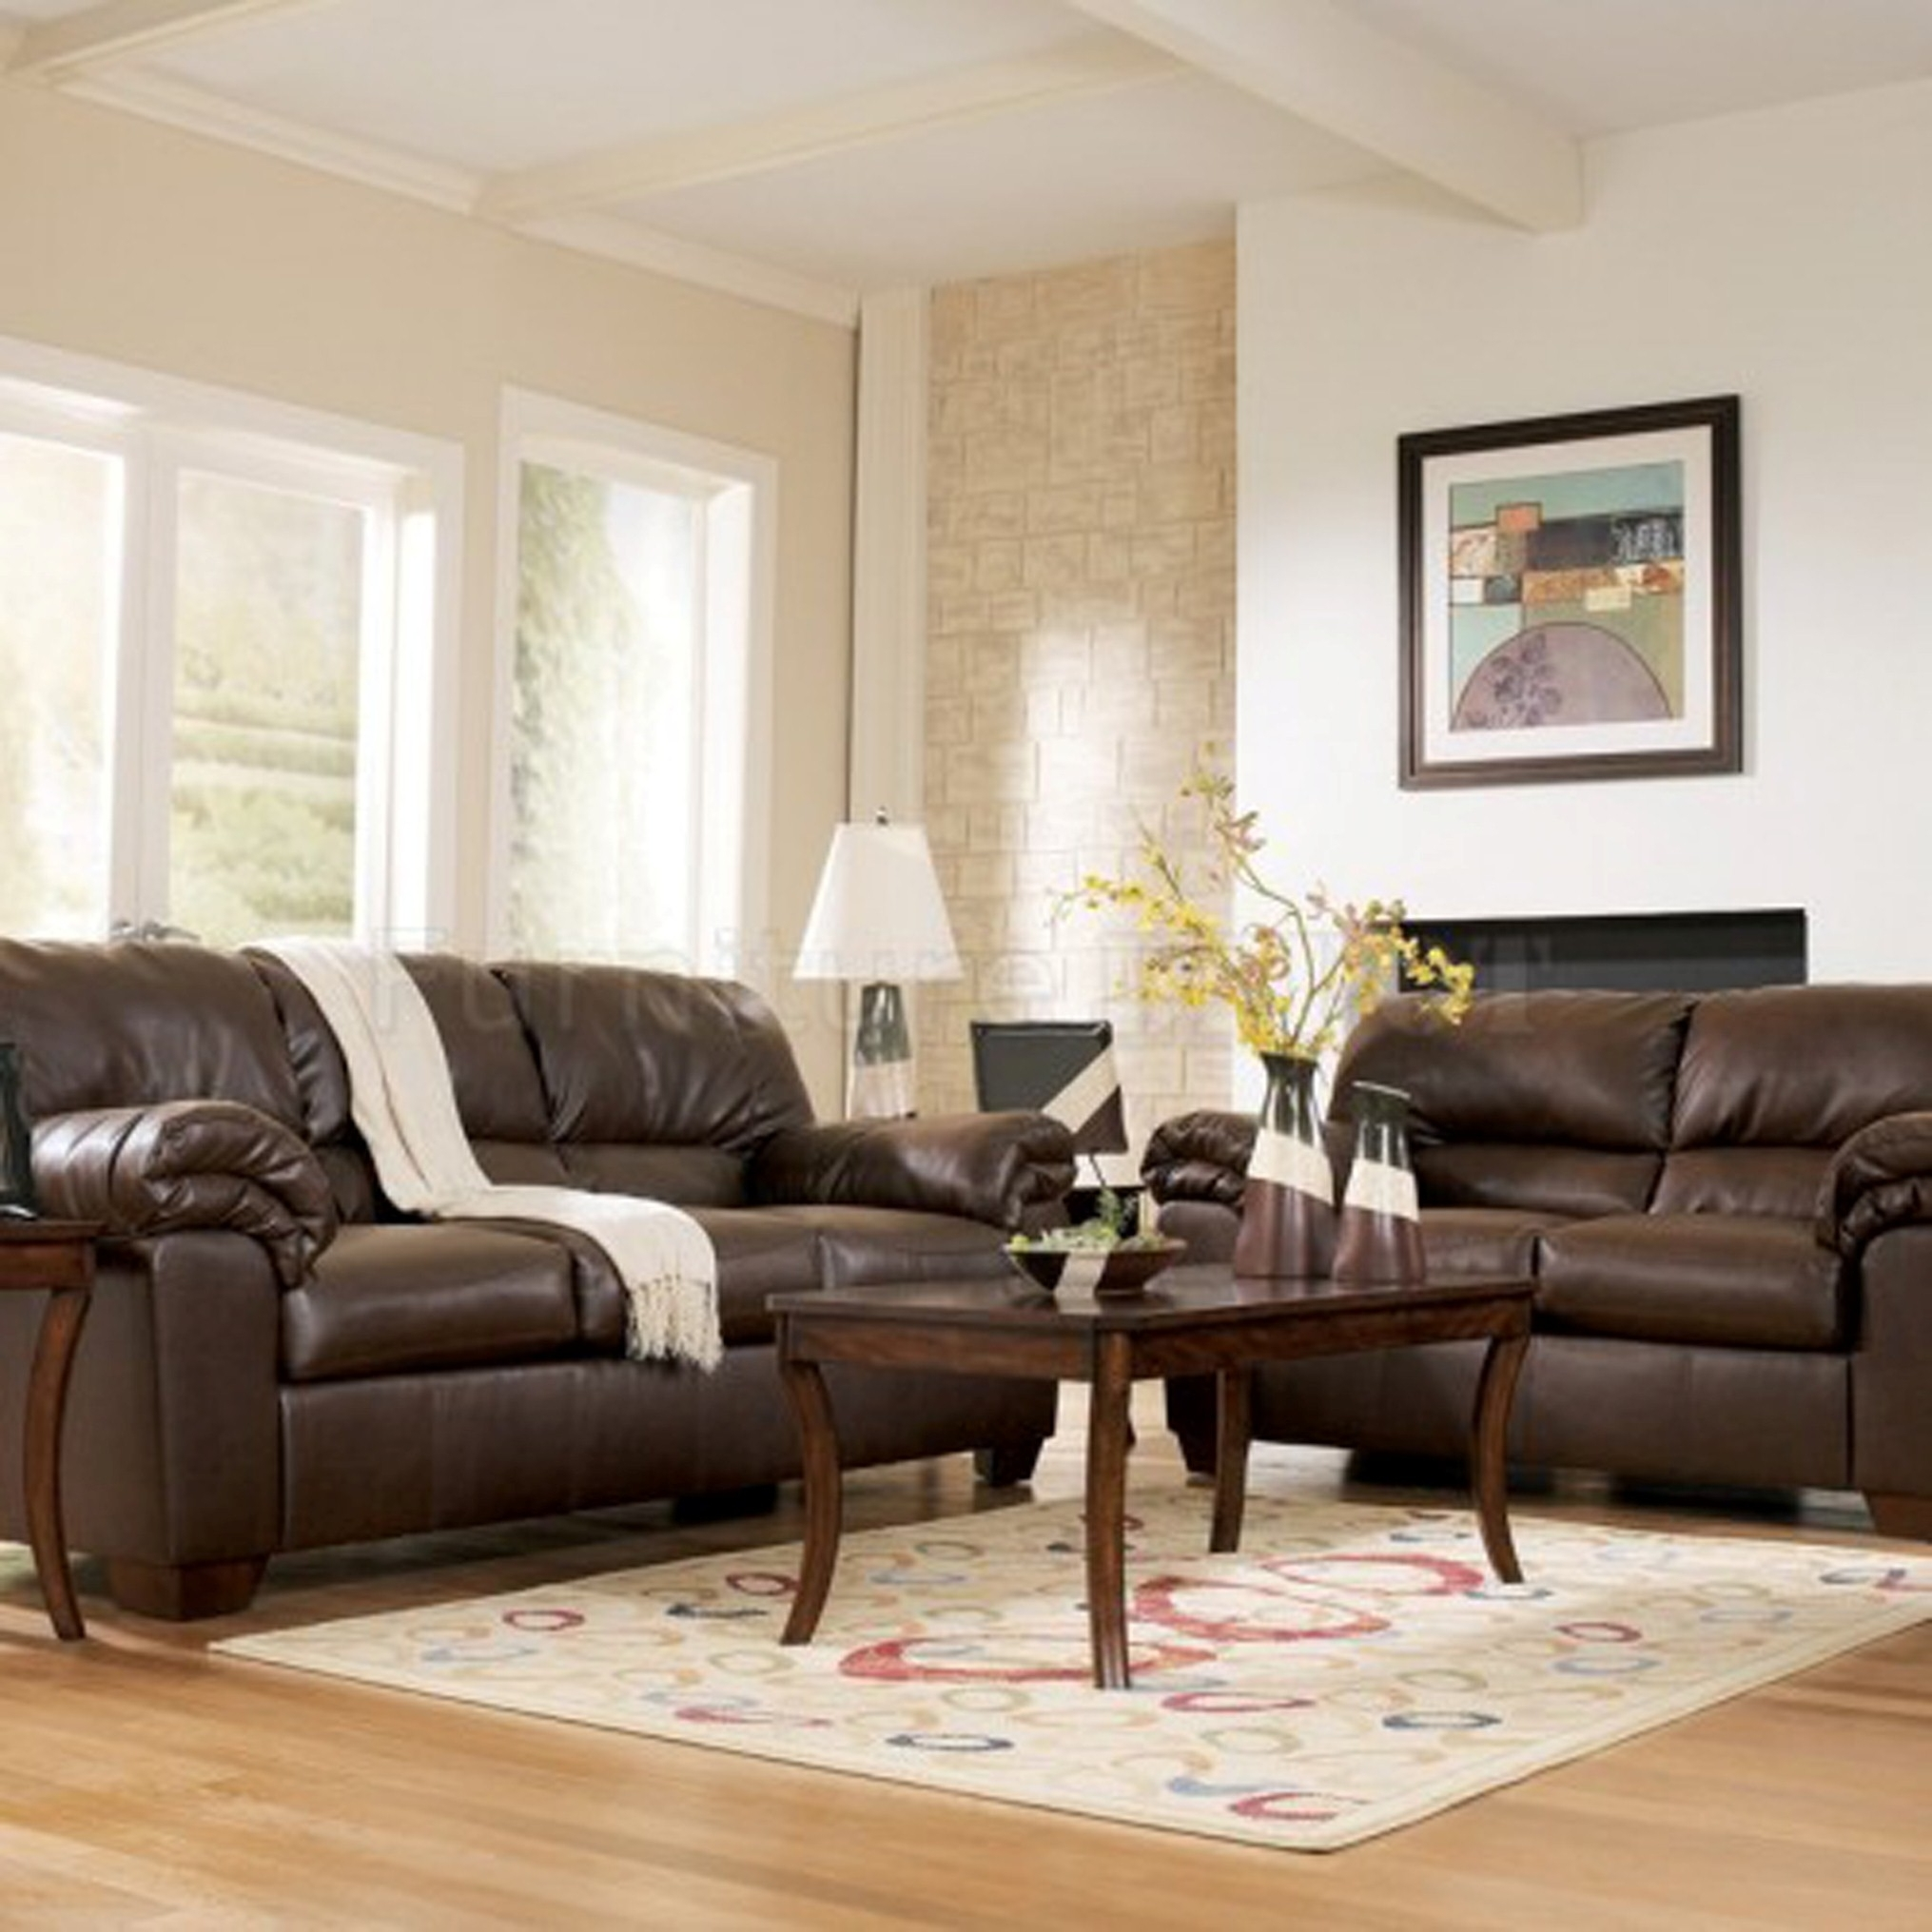 leather sofa design living room living room ideas brown leather sofa 22858